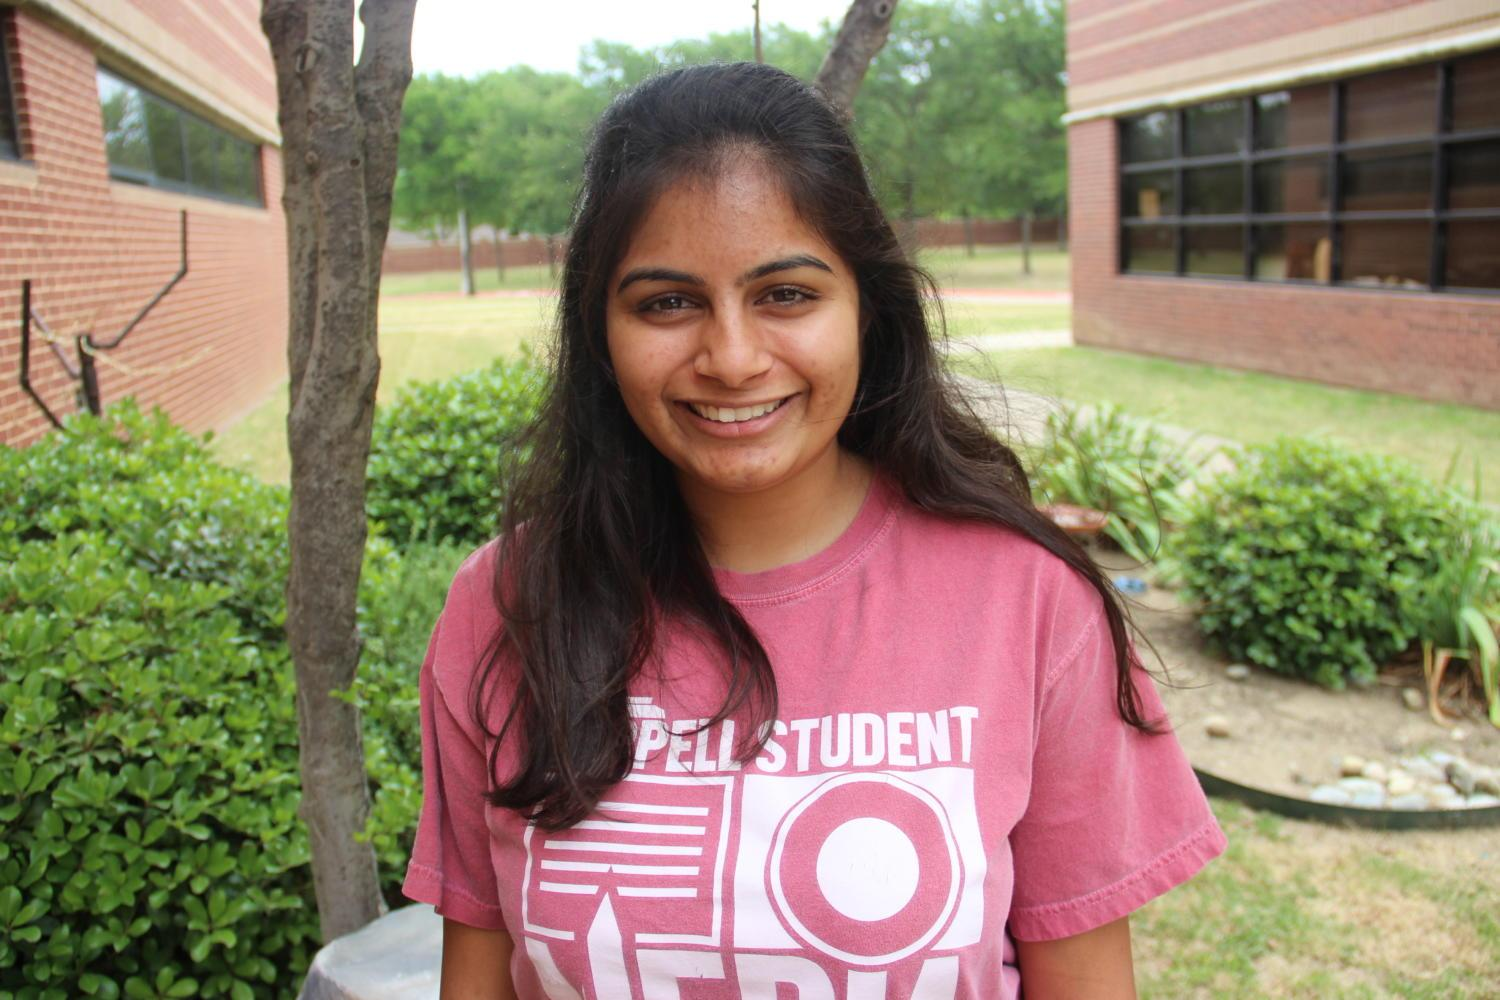 Senior Sakshi Venkatraman reflects on her time at CHS and her feelings about leaving for college. Photo by Amanda Hair.